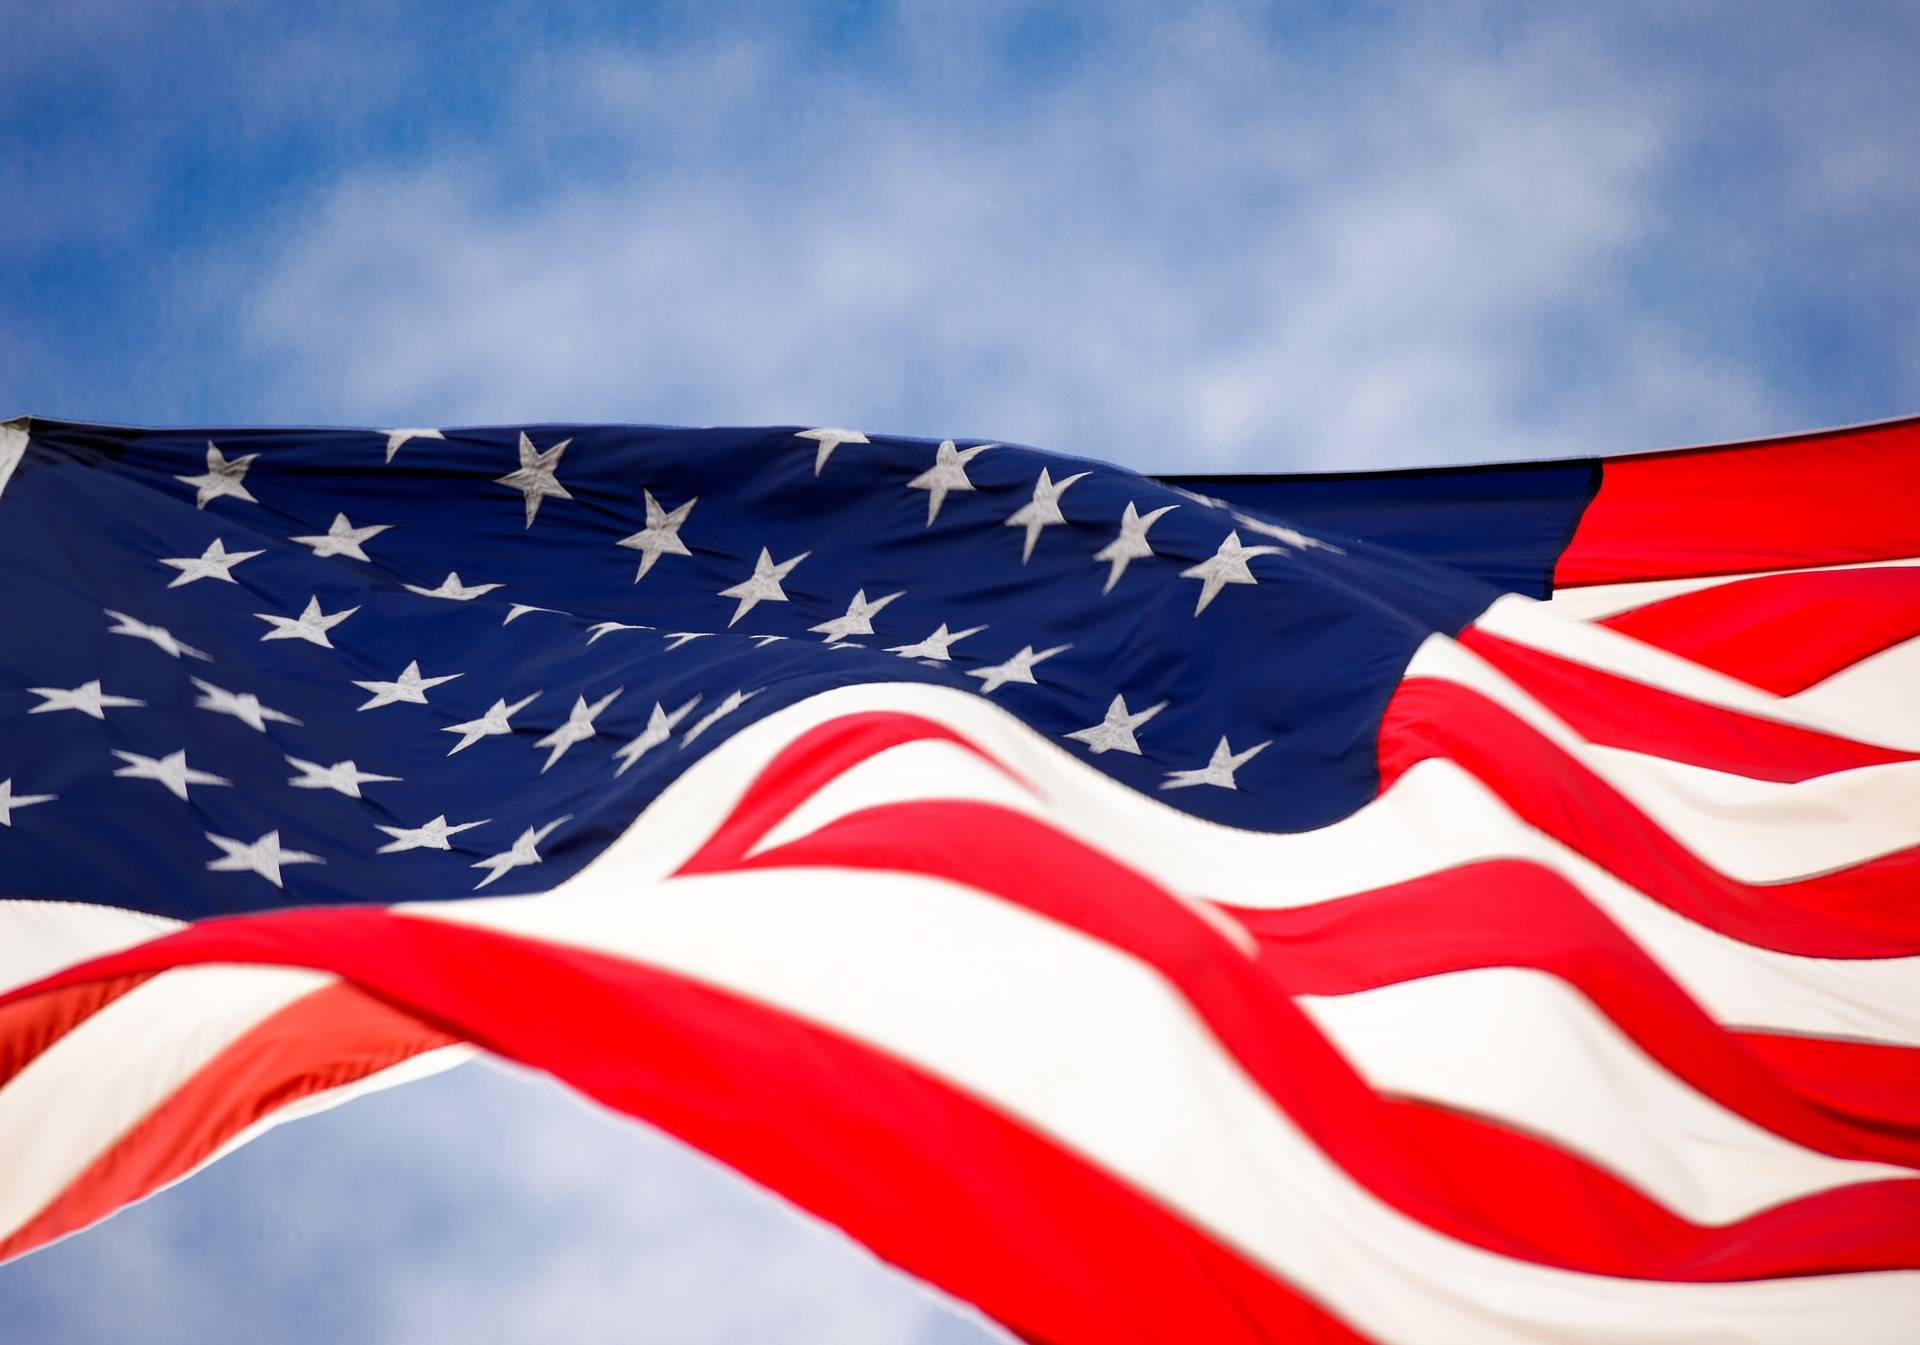 Picture of the American Flag.